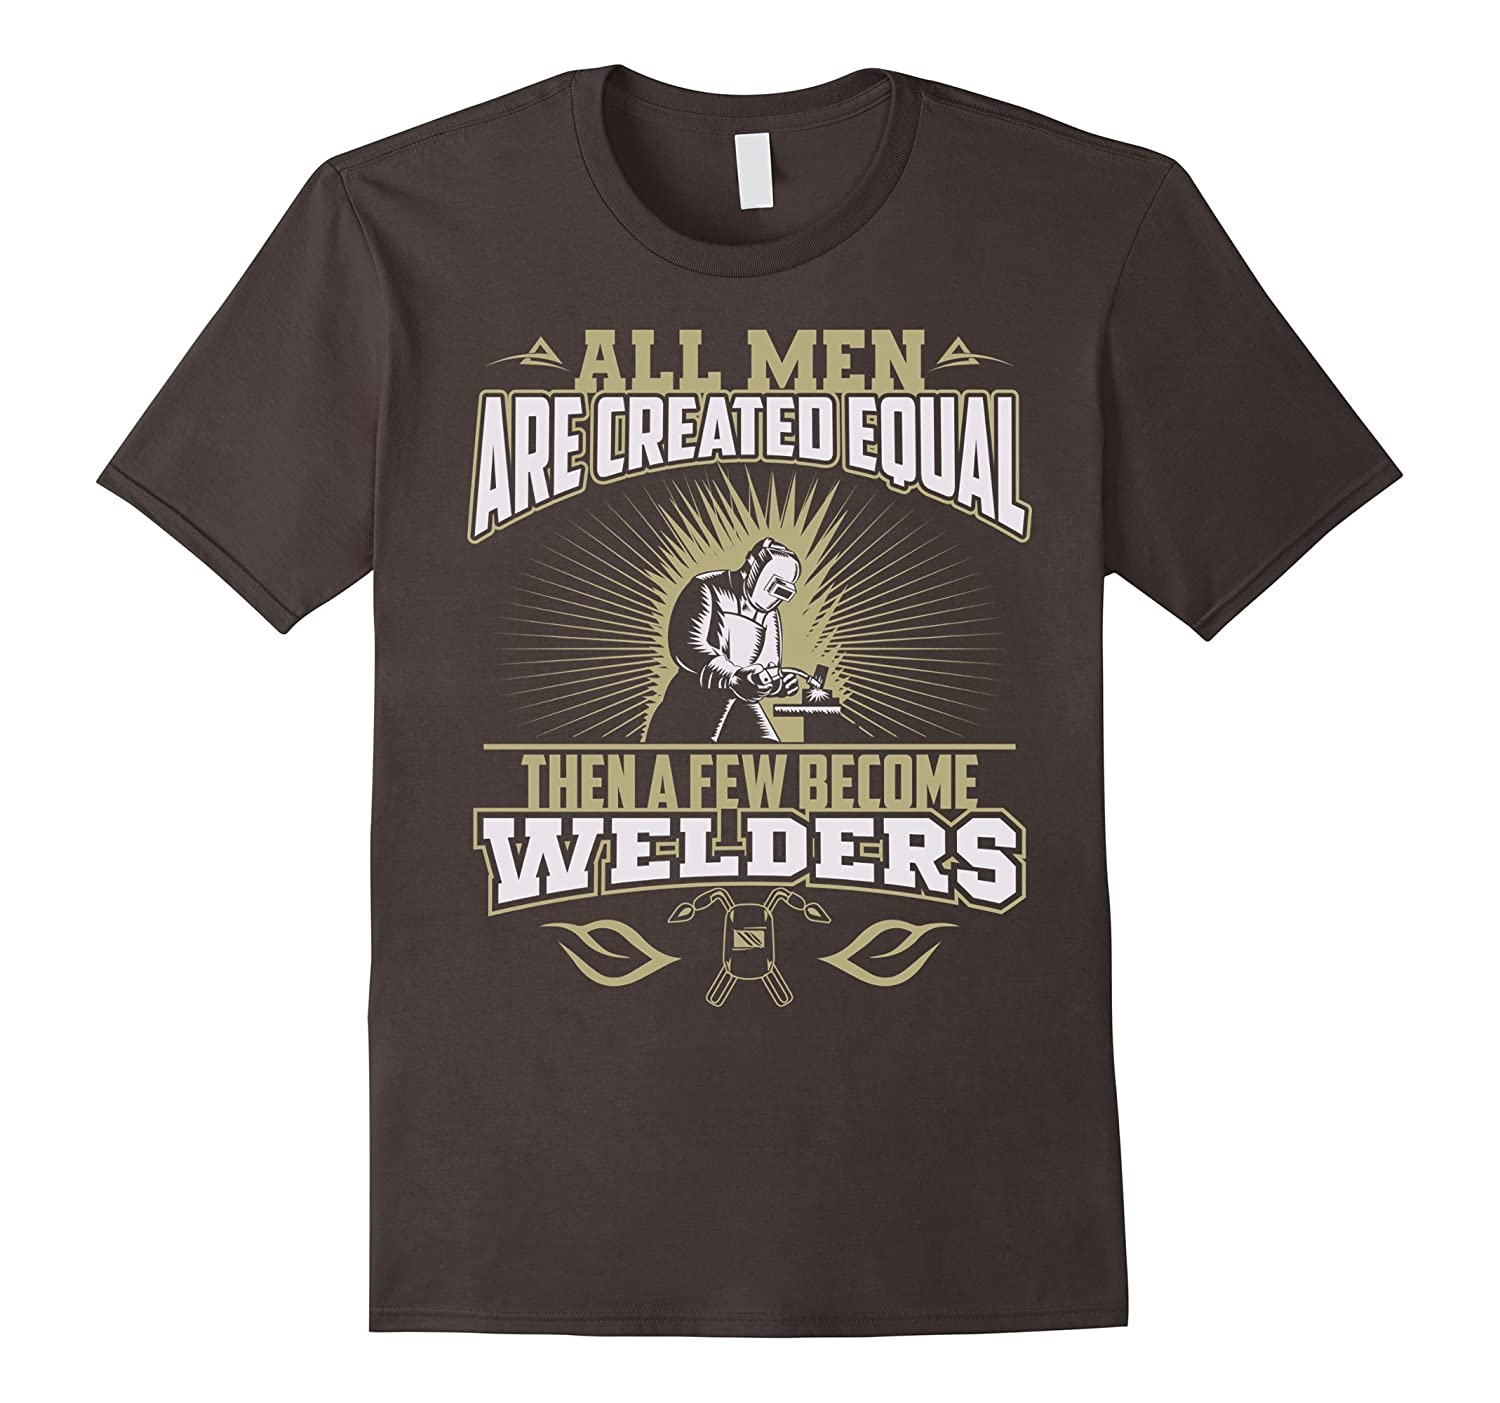 All men are created equal then a few become welders T-shirt